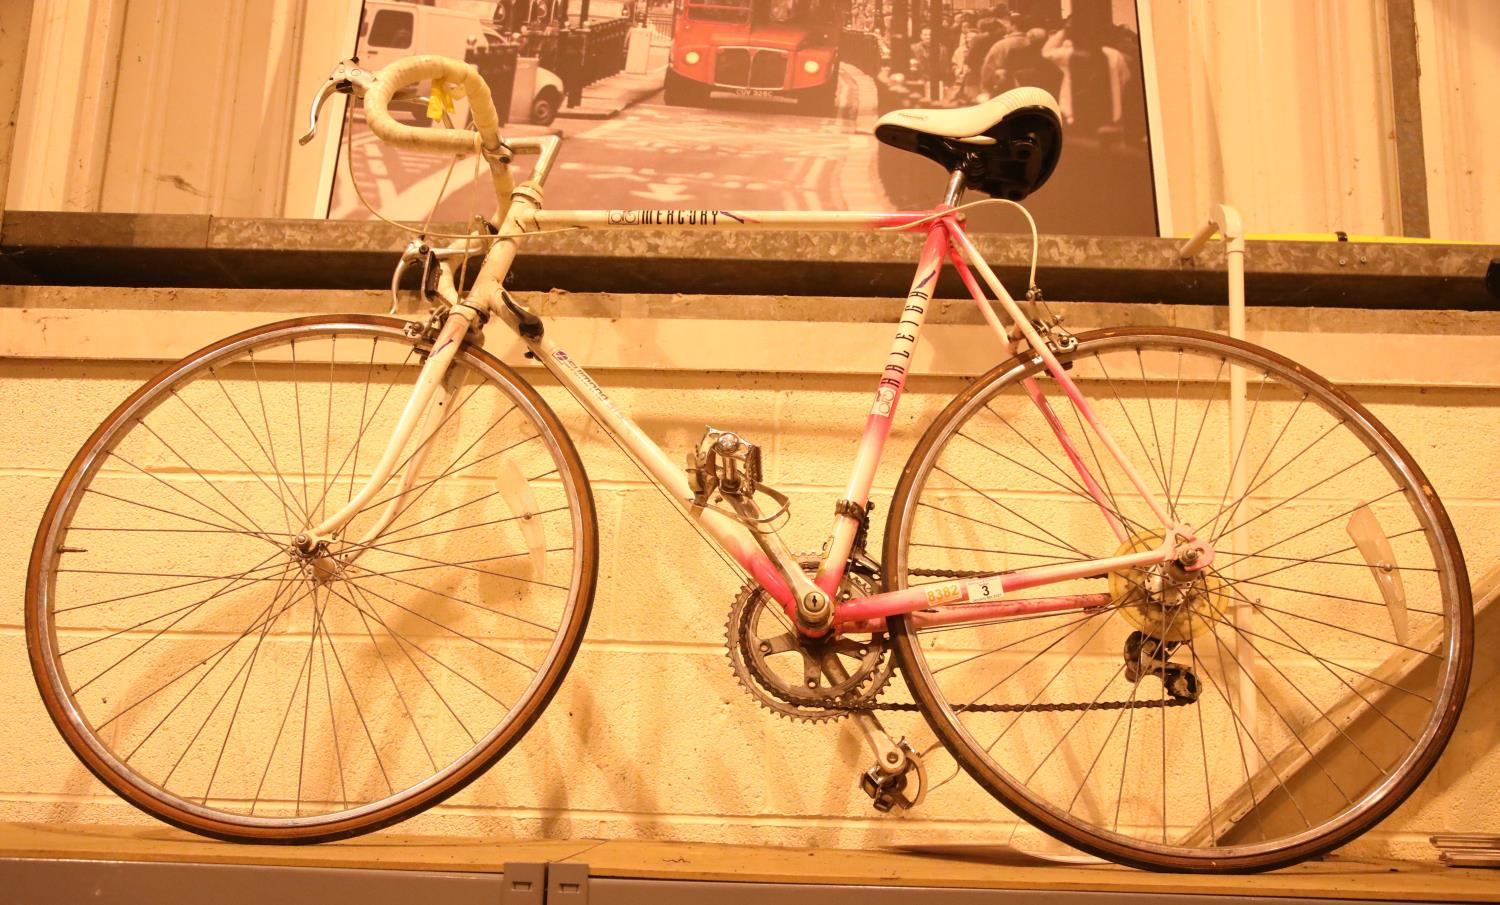 Gents Raleigh Mercury 12 speed racing bike, 24'' frame. Not available for in-house P&P